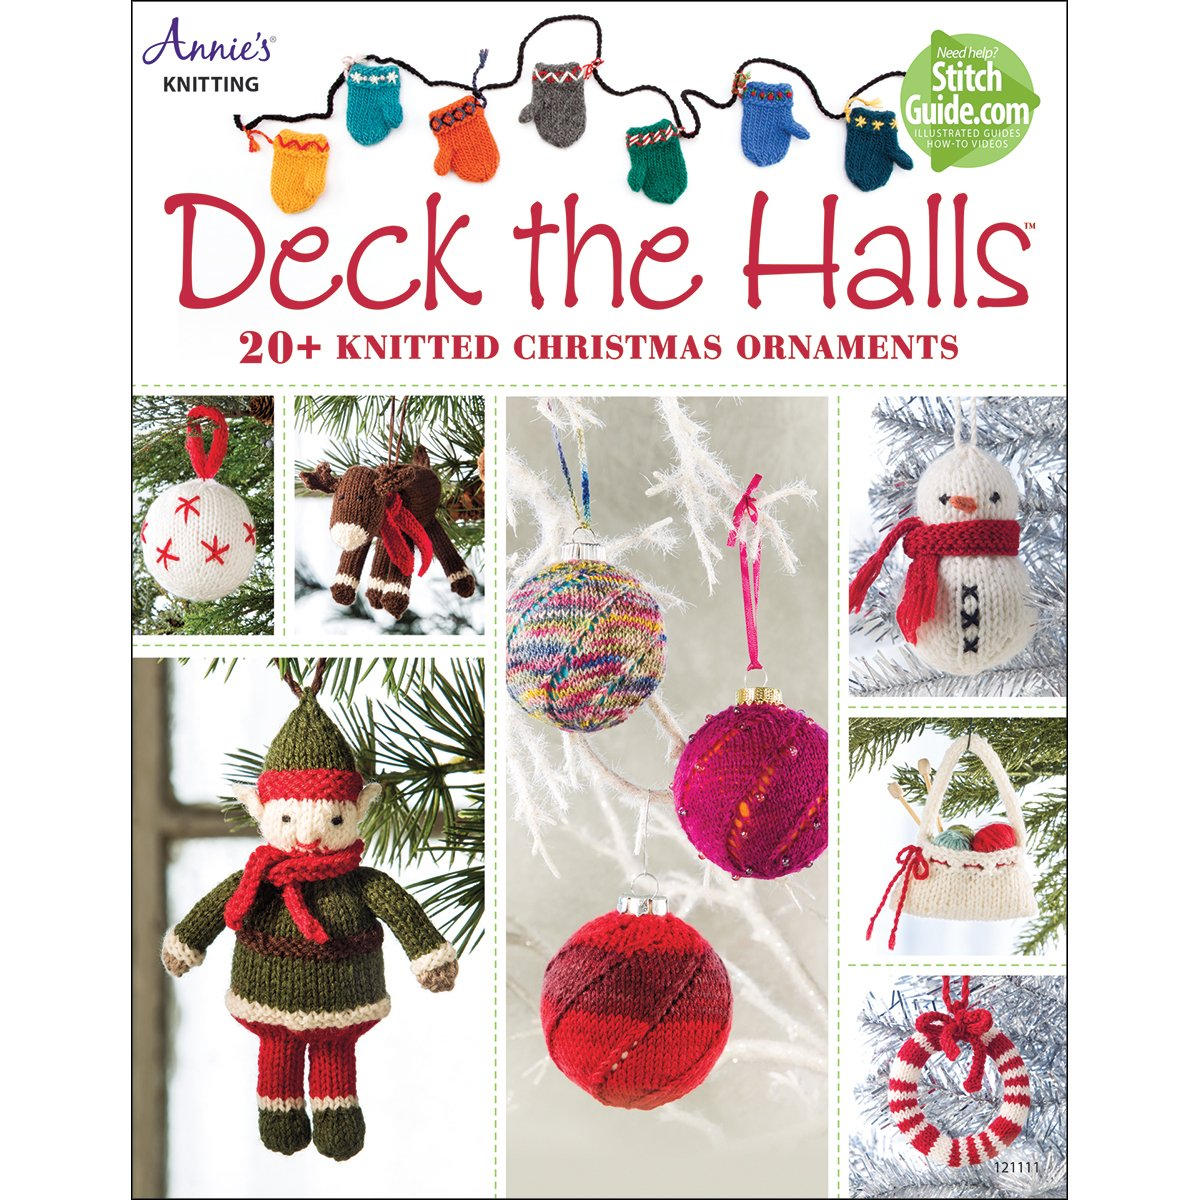 Amazon.com: Deck the Halls: 20 Knitted Christmas Ornament Patterns ...